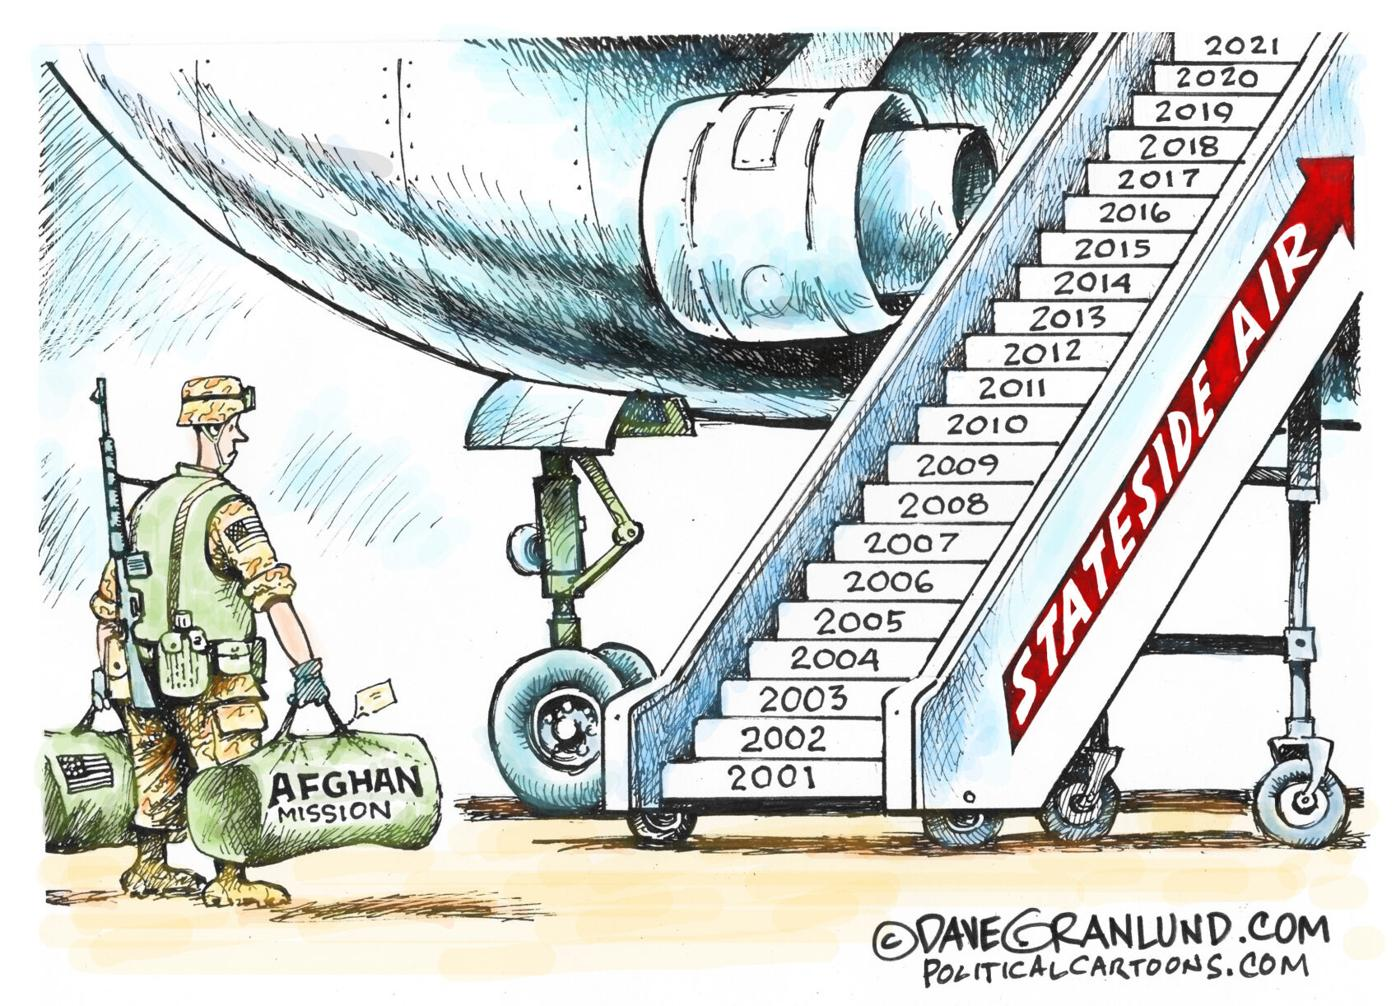 Infrastructure, police training, Biden, McConnell and more: A collection of editorial cartoons